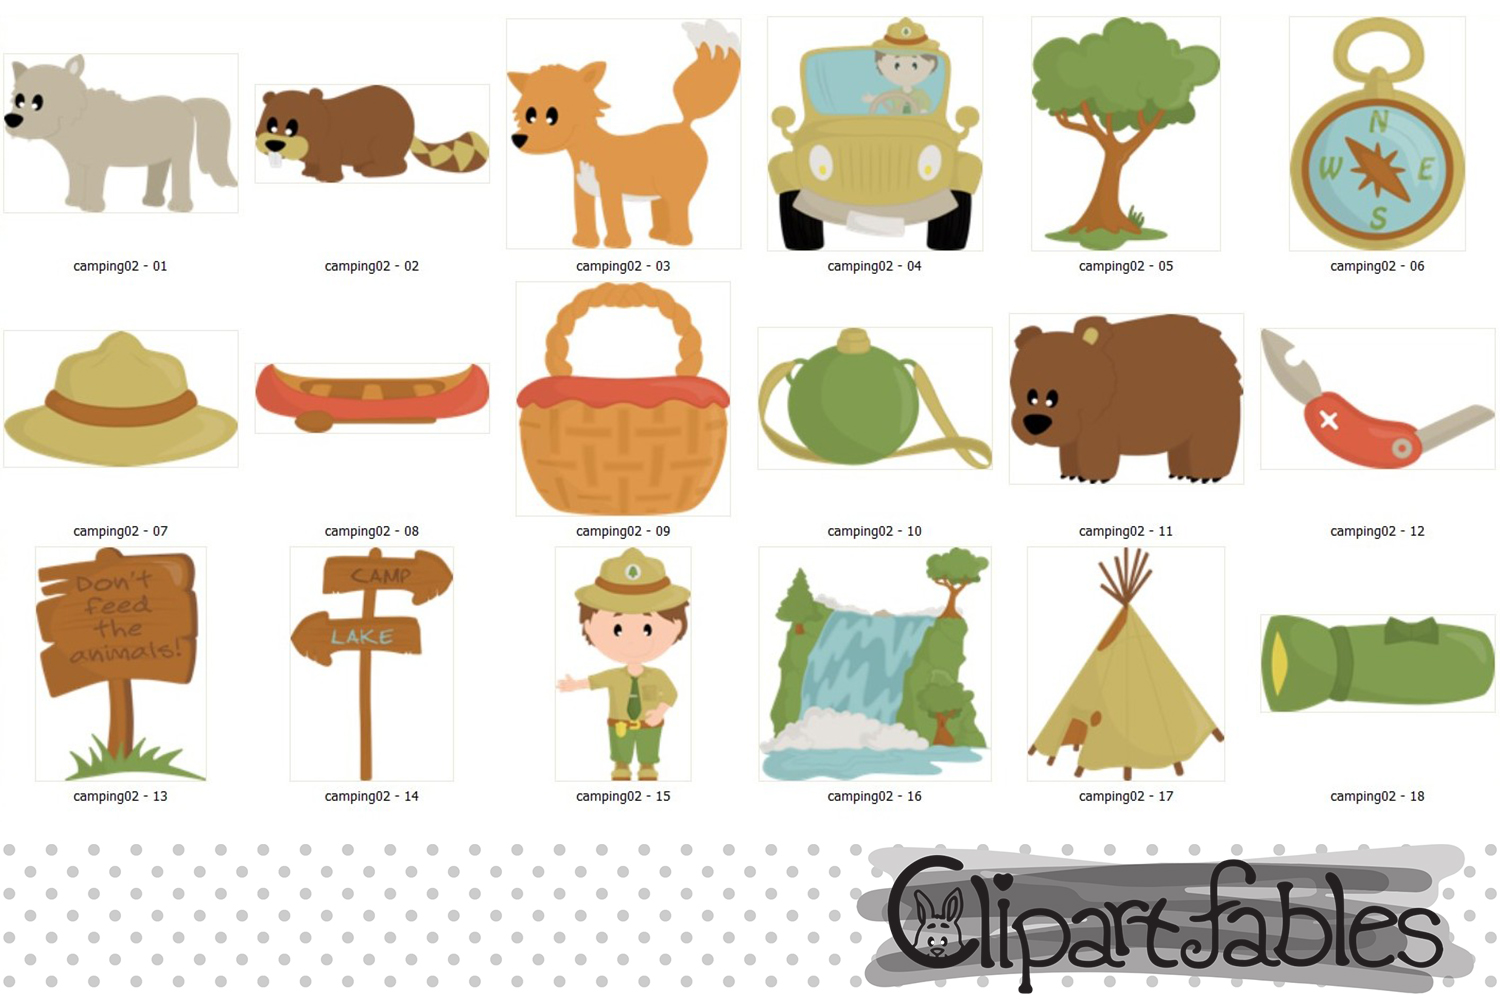 Animal zoo rangers clipart clipart images gallery for free.